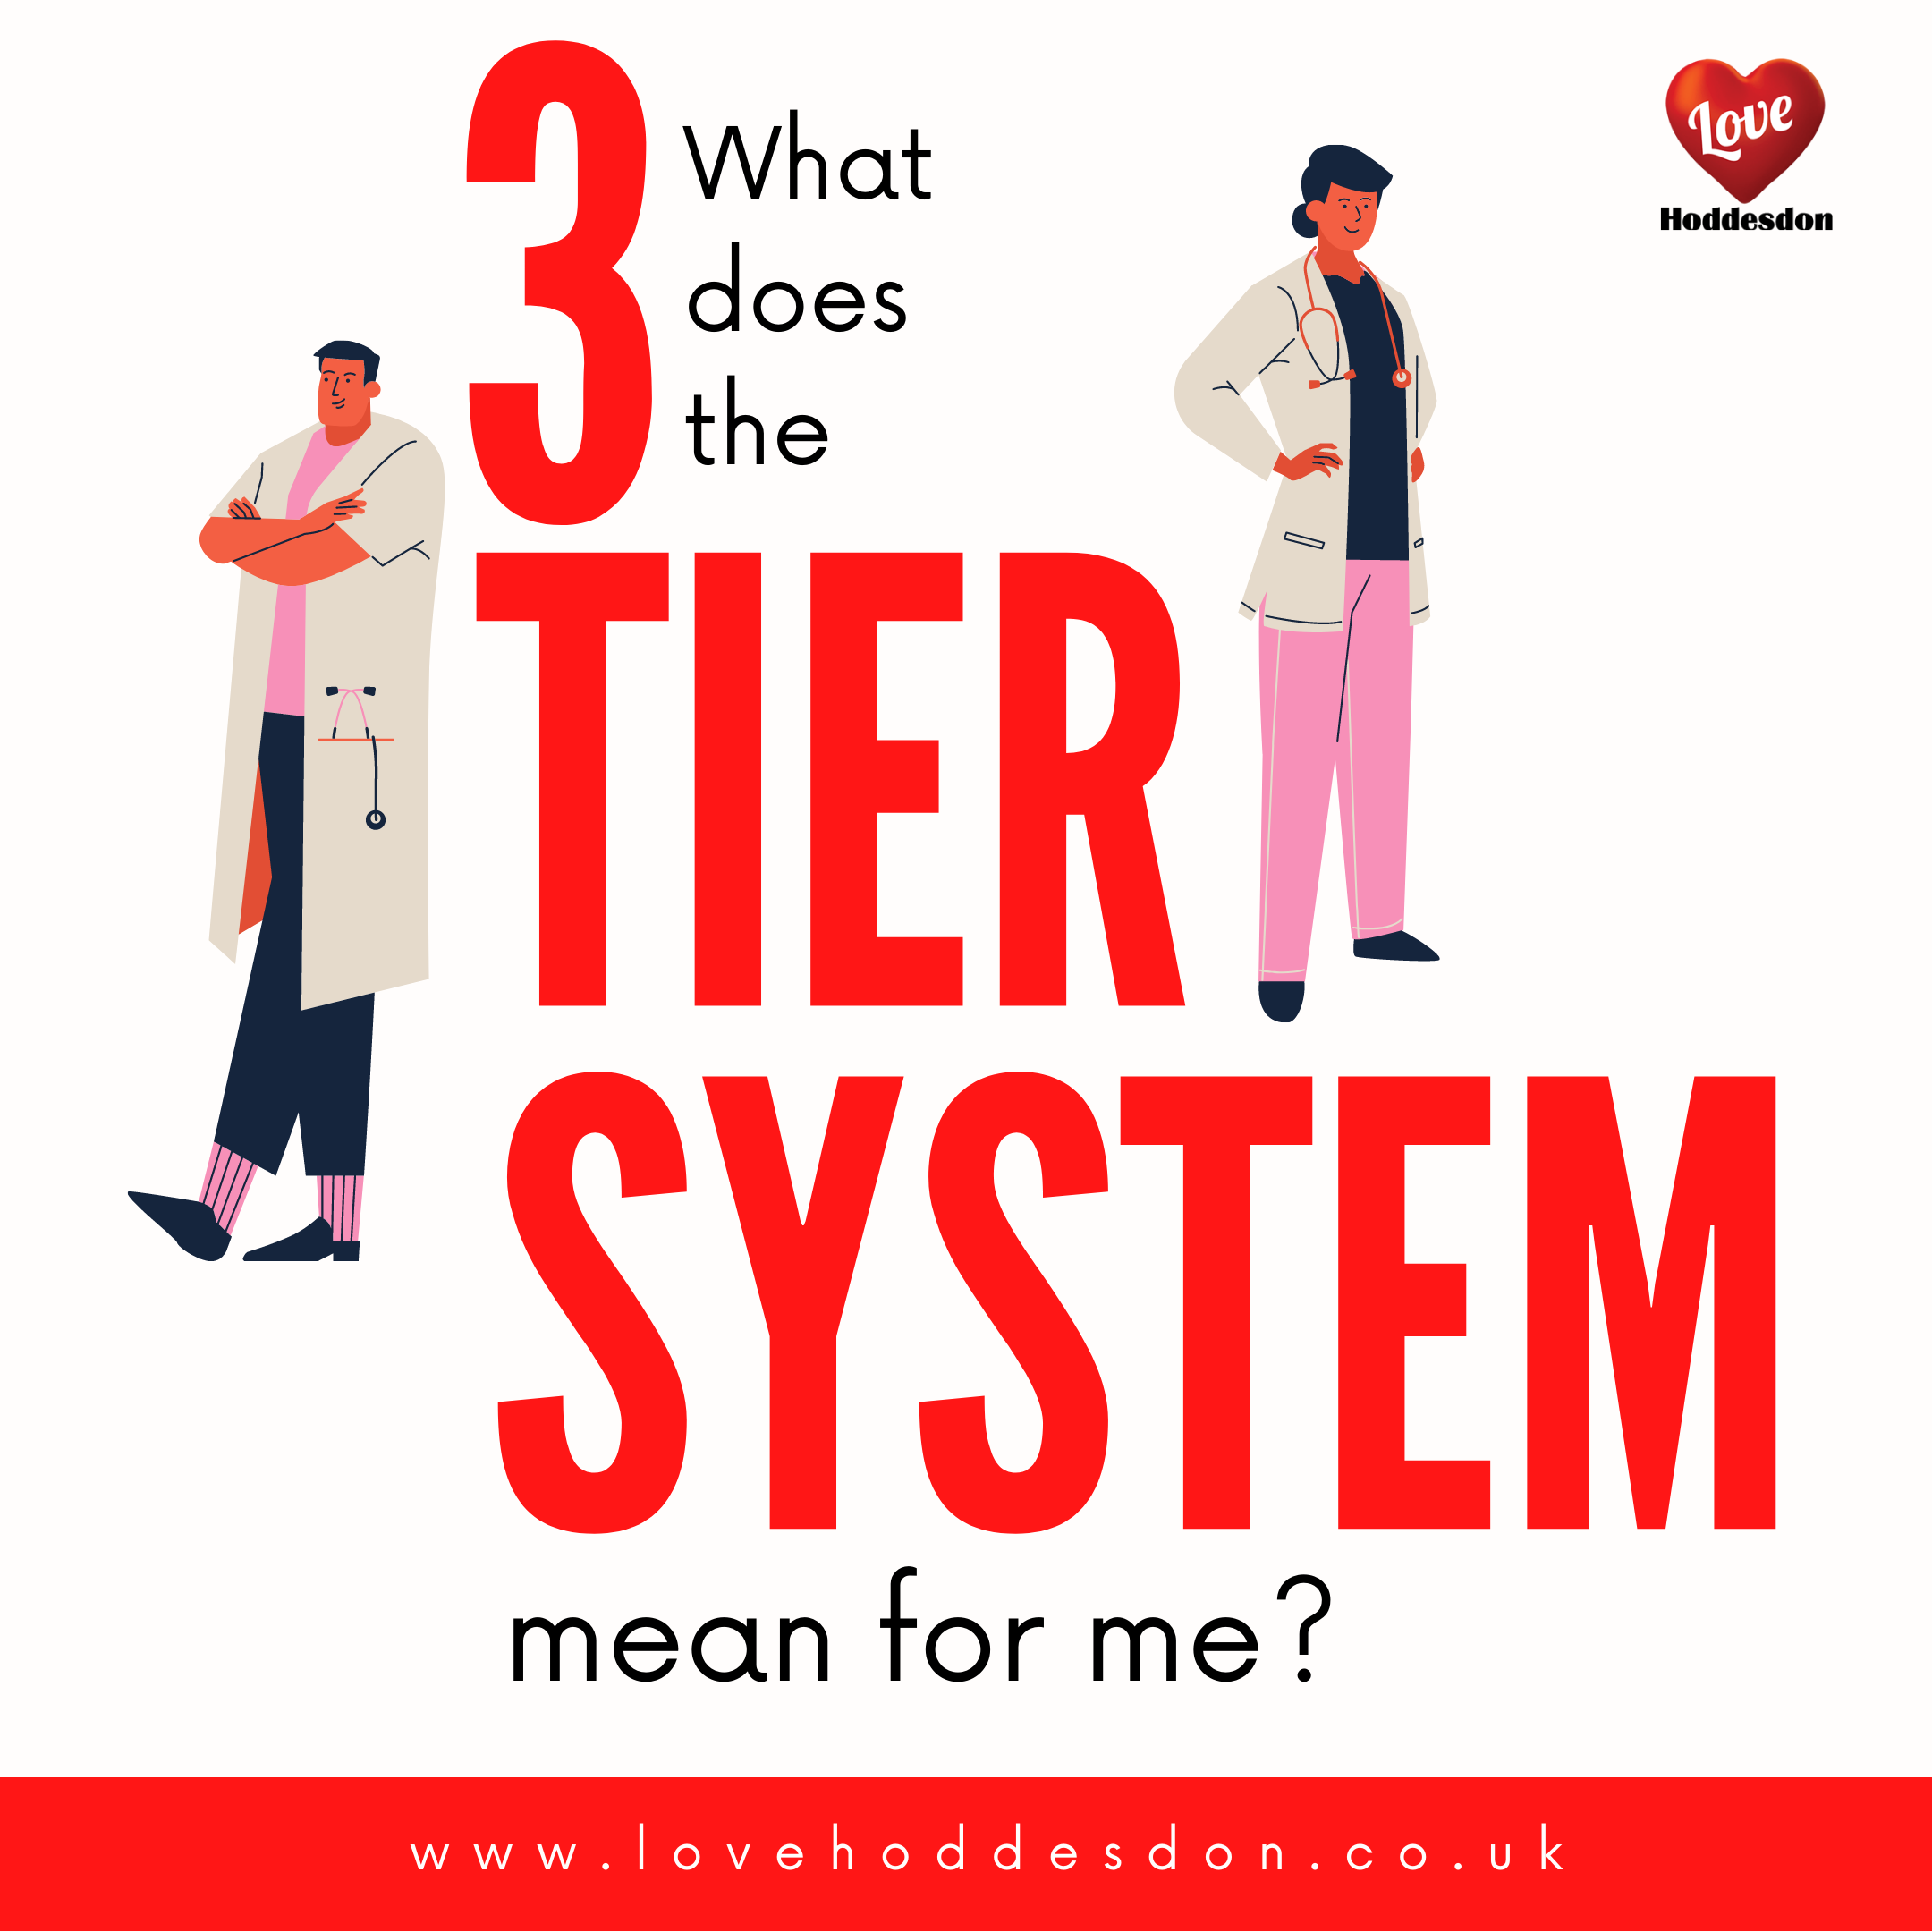 What does the 3 tier system mean for me?